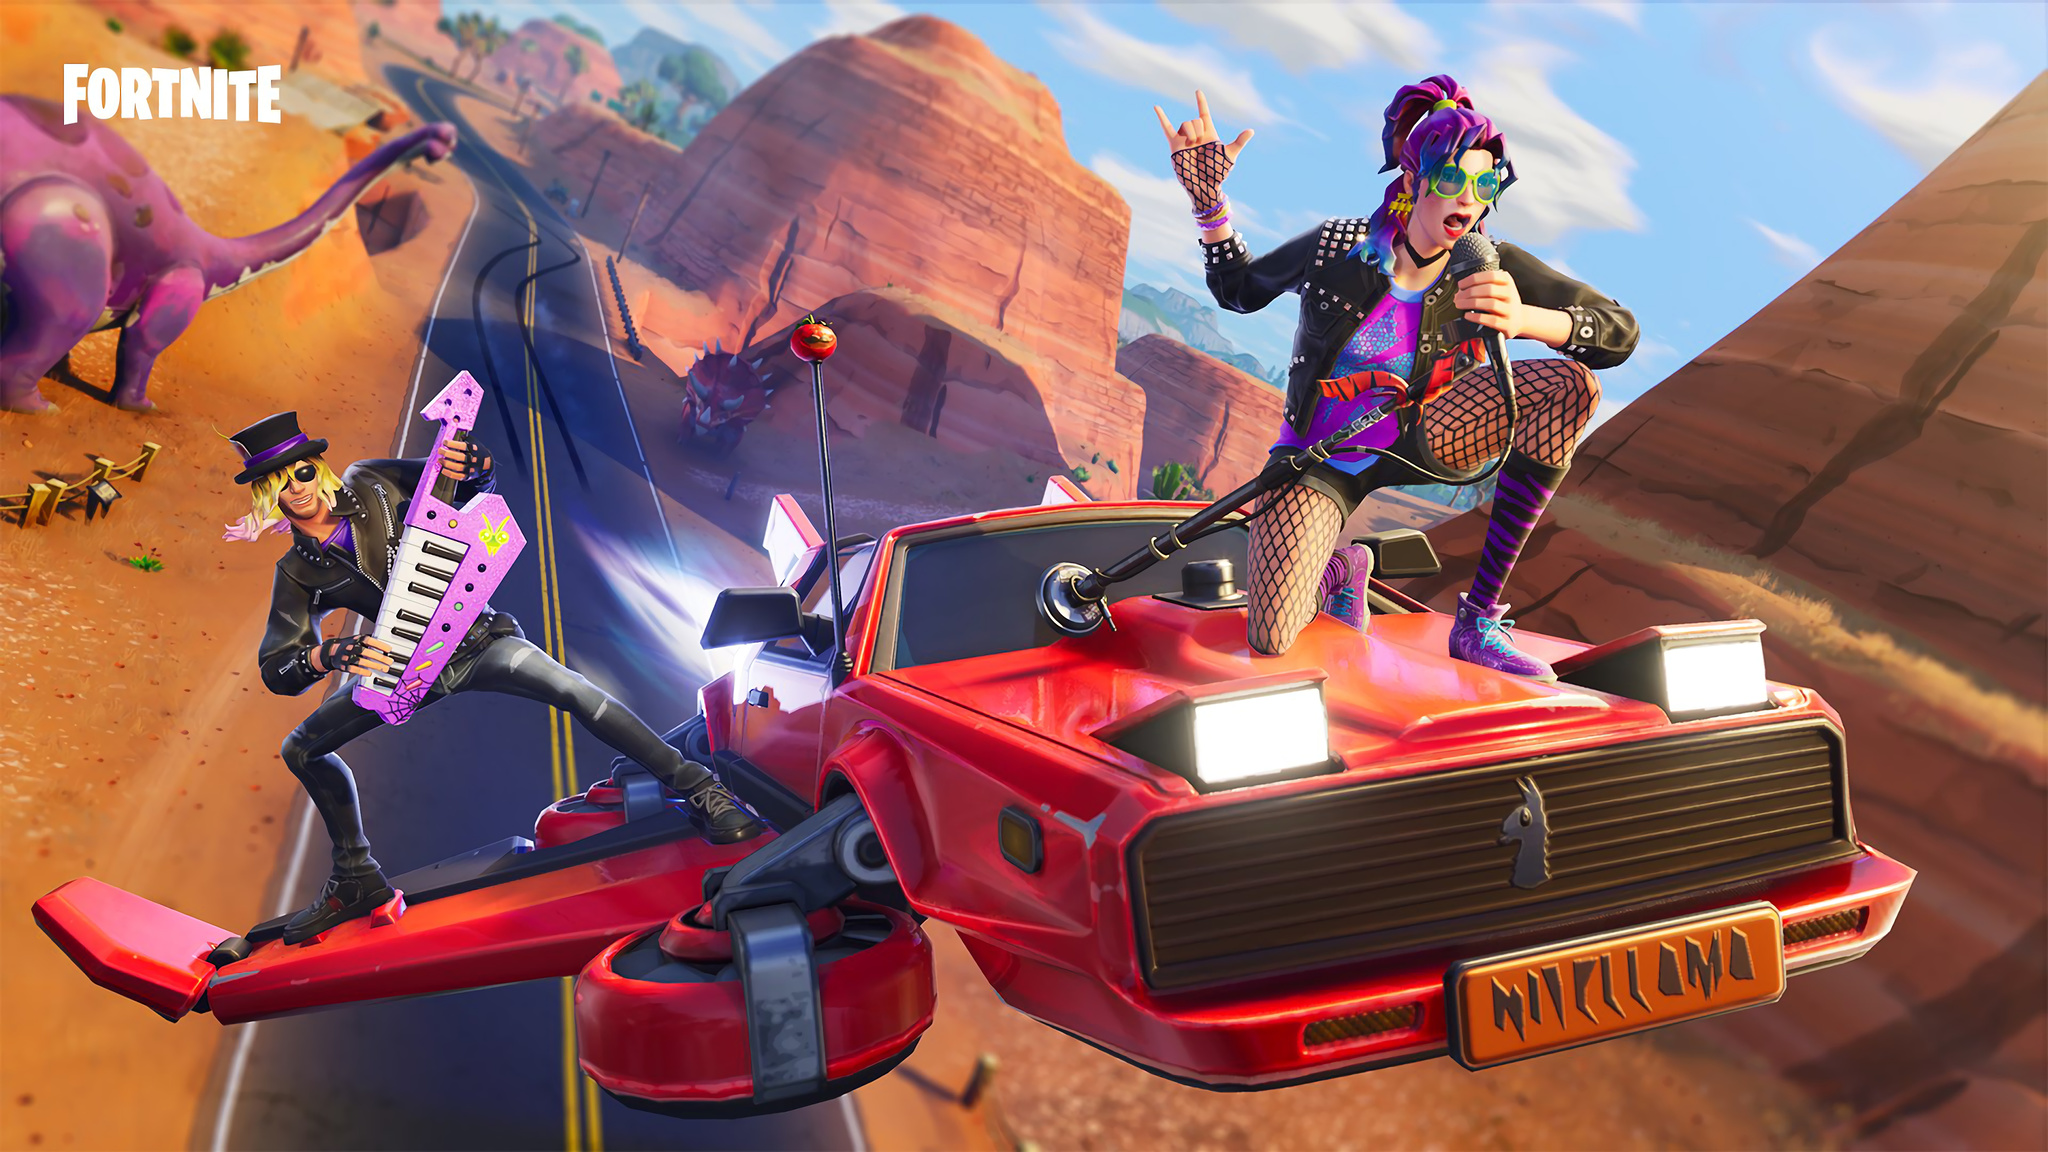 Free Download 2048x1152 Stage Slayer And Synth Star Fortnite